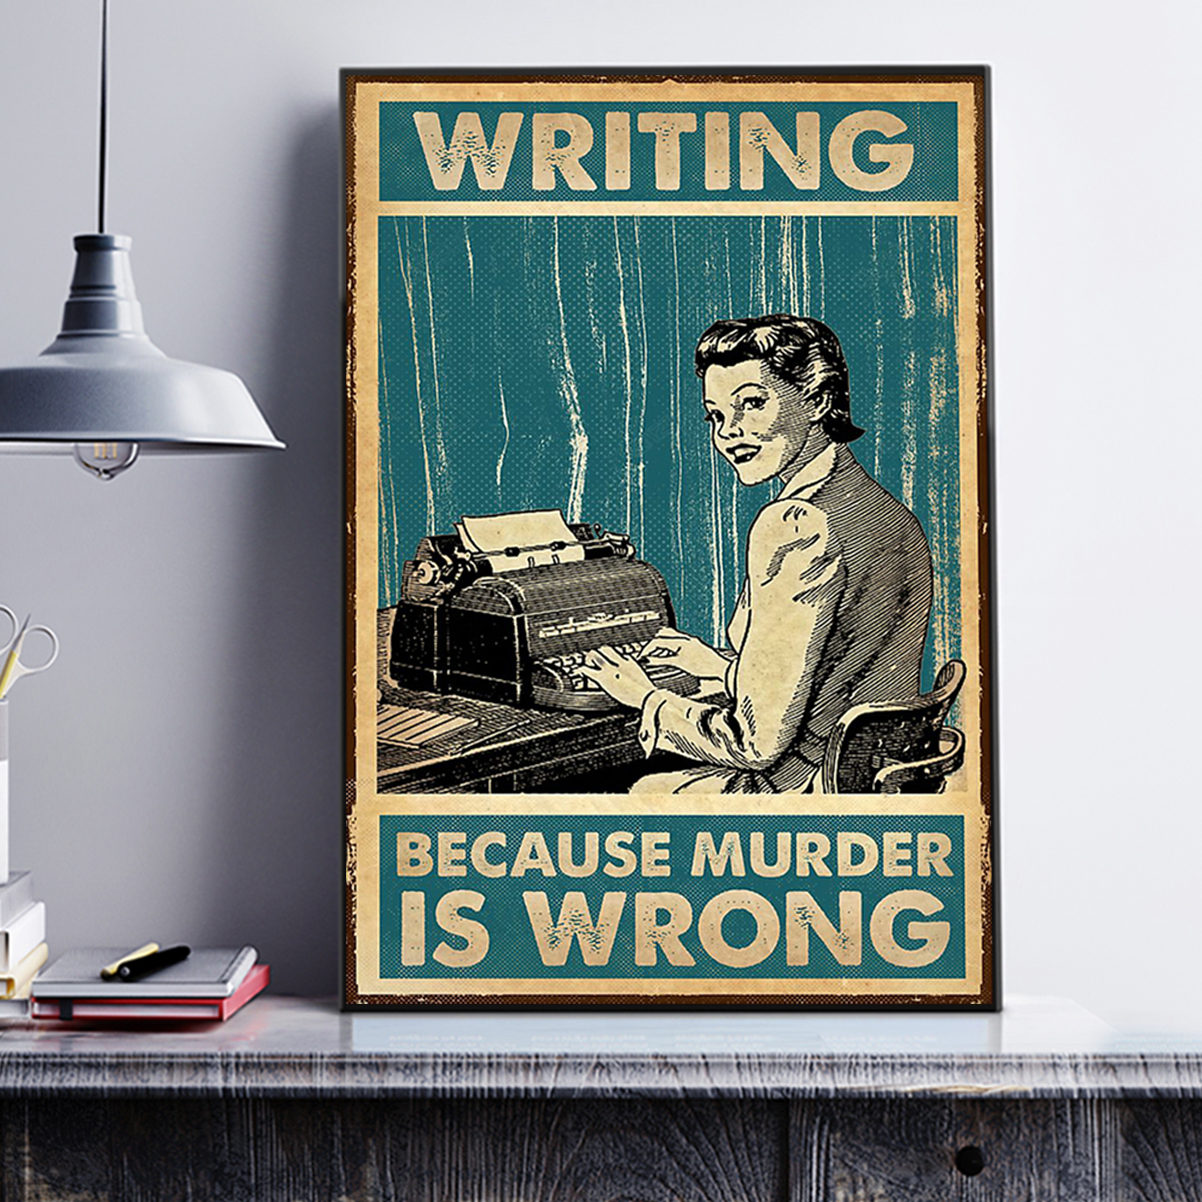 Writing because murder is wrong poster A3